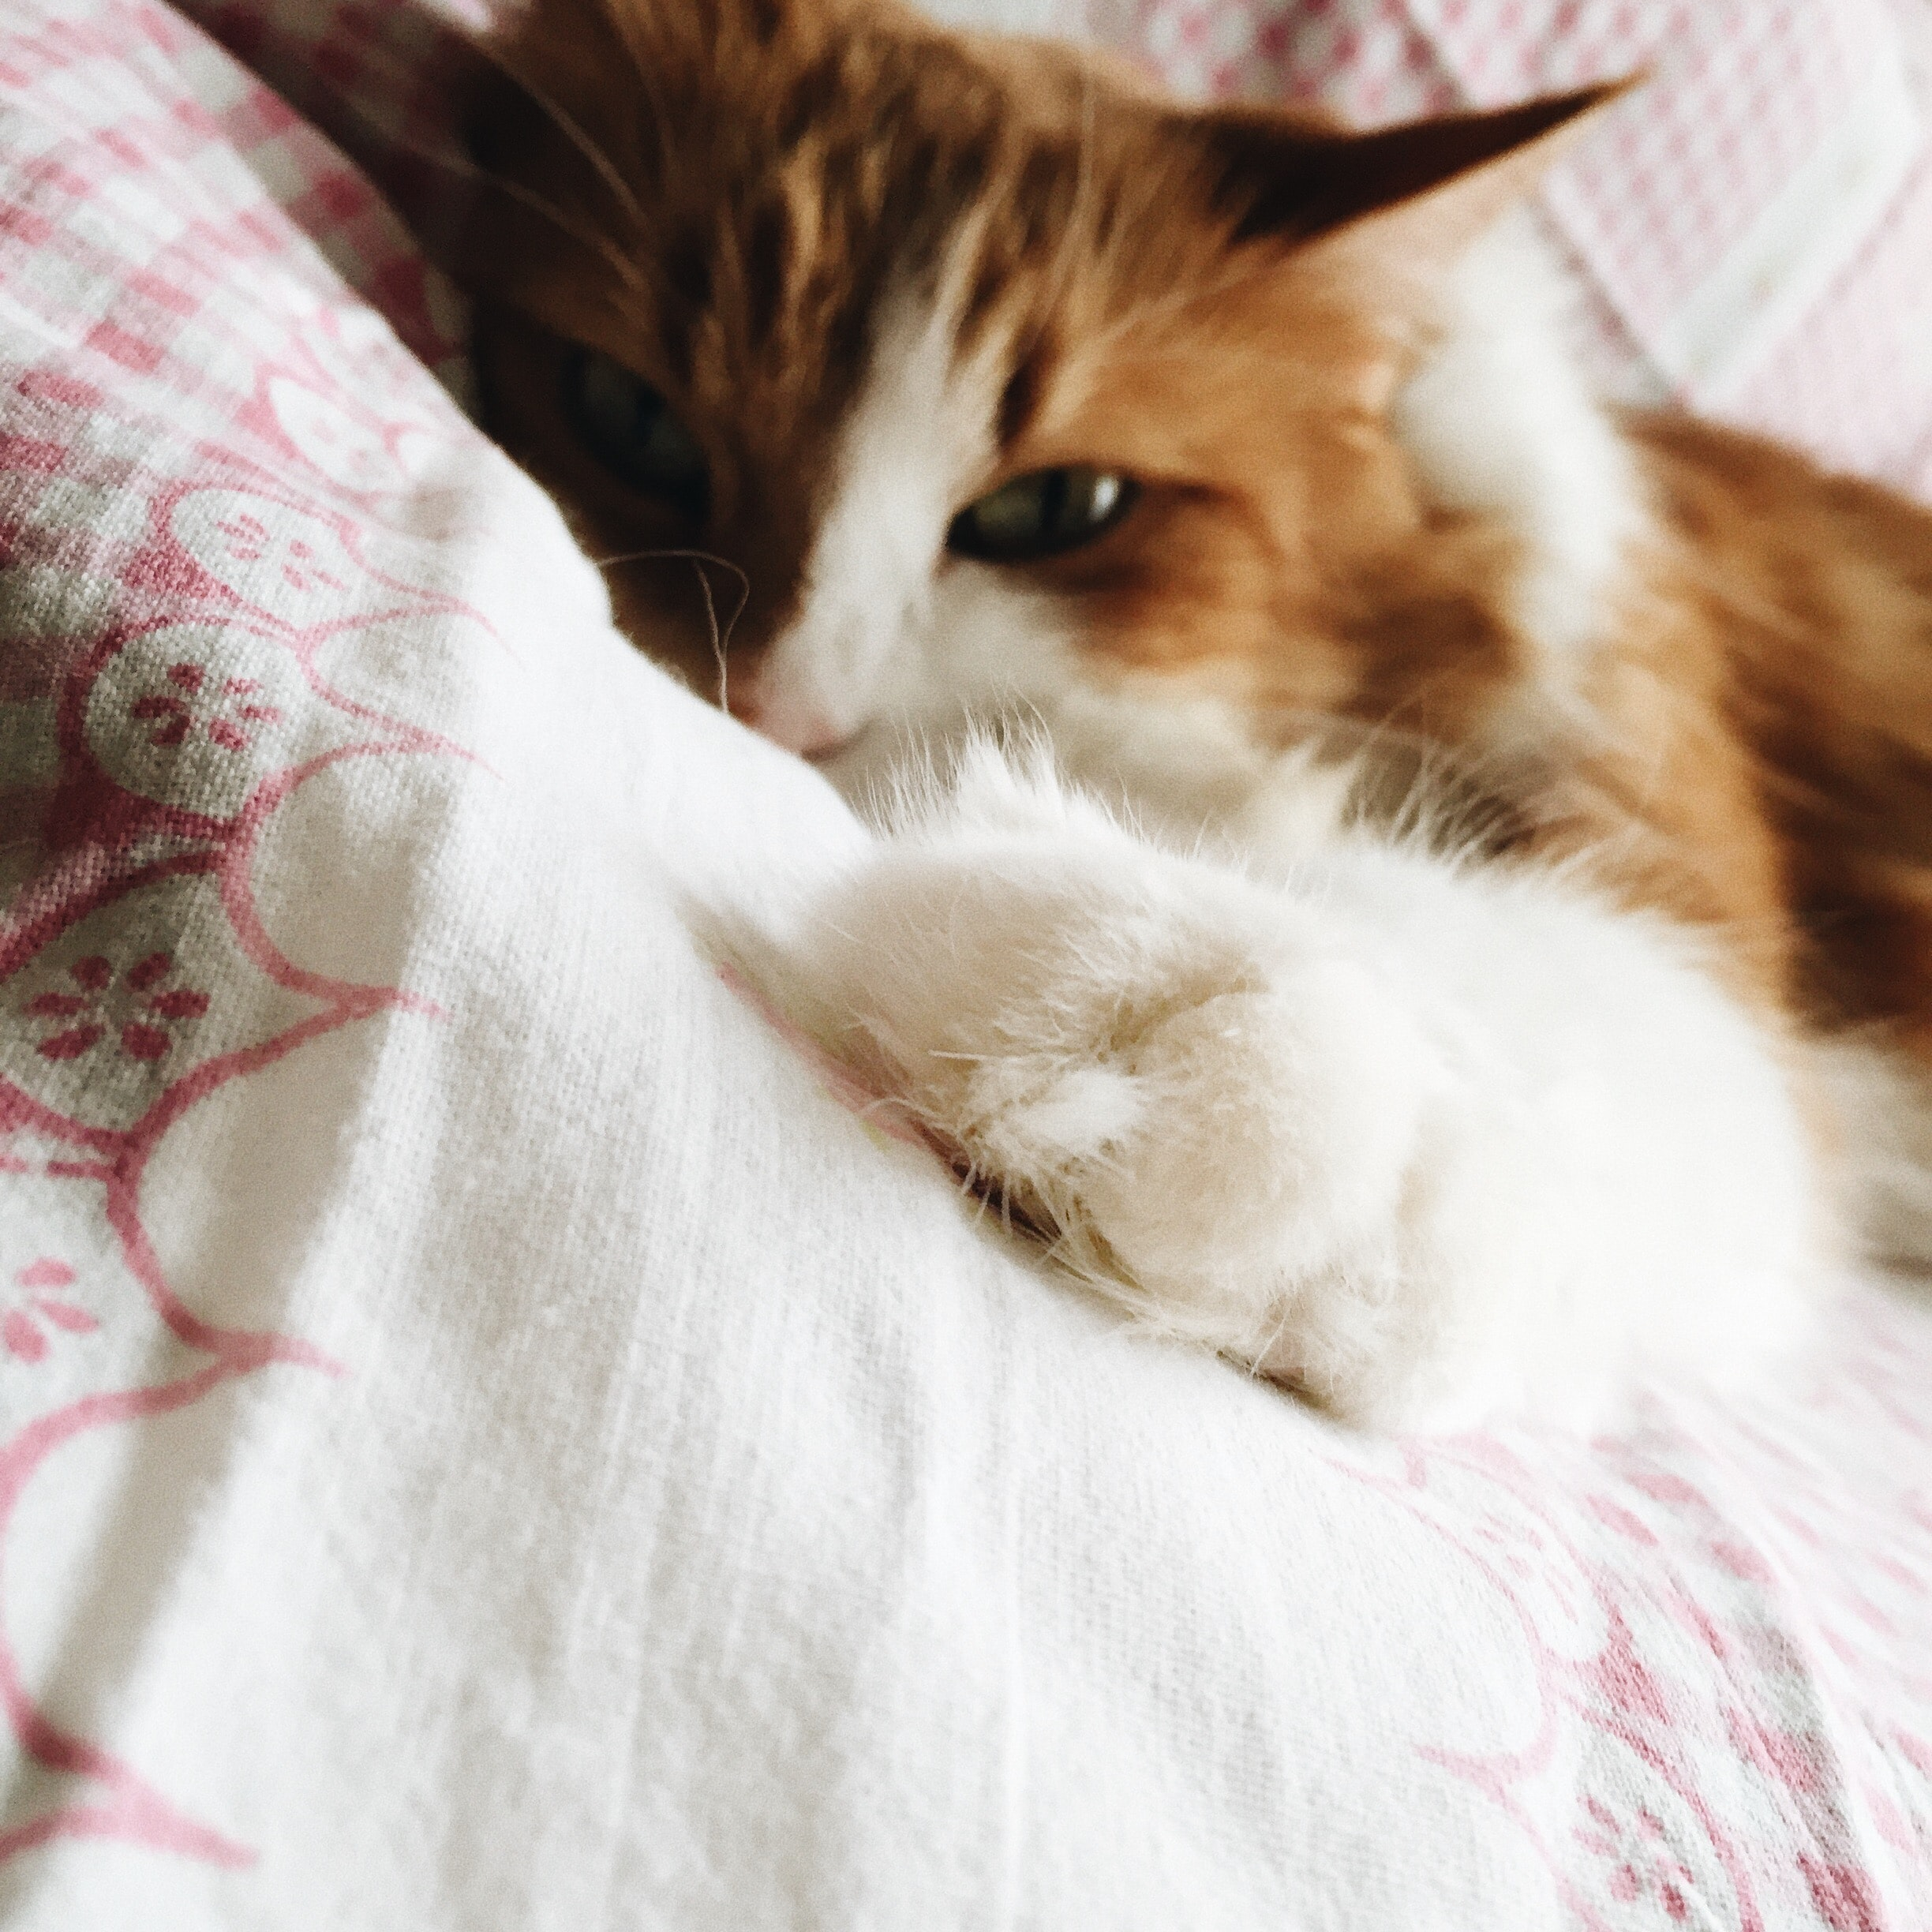 Orange and white cat lying on a bed blanket with stretched out paw